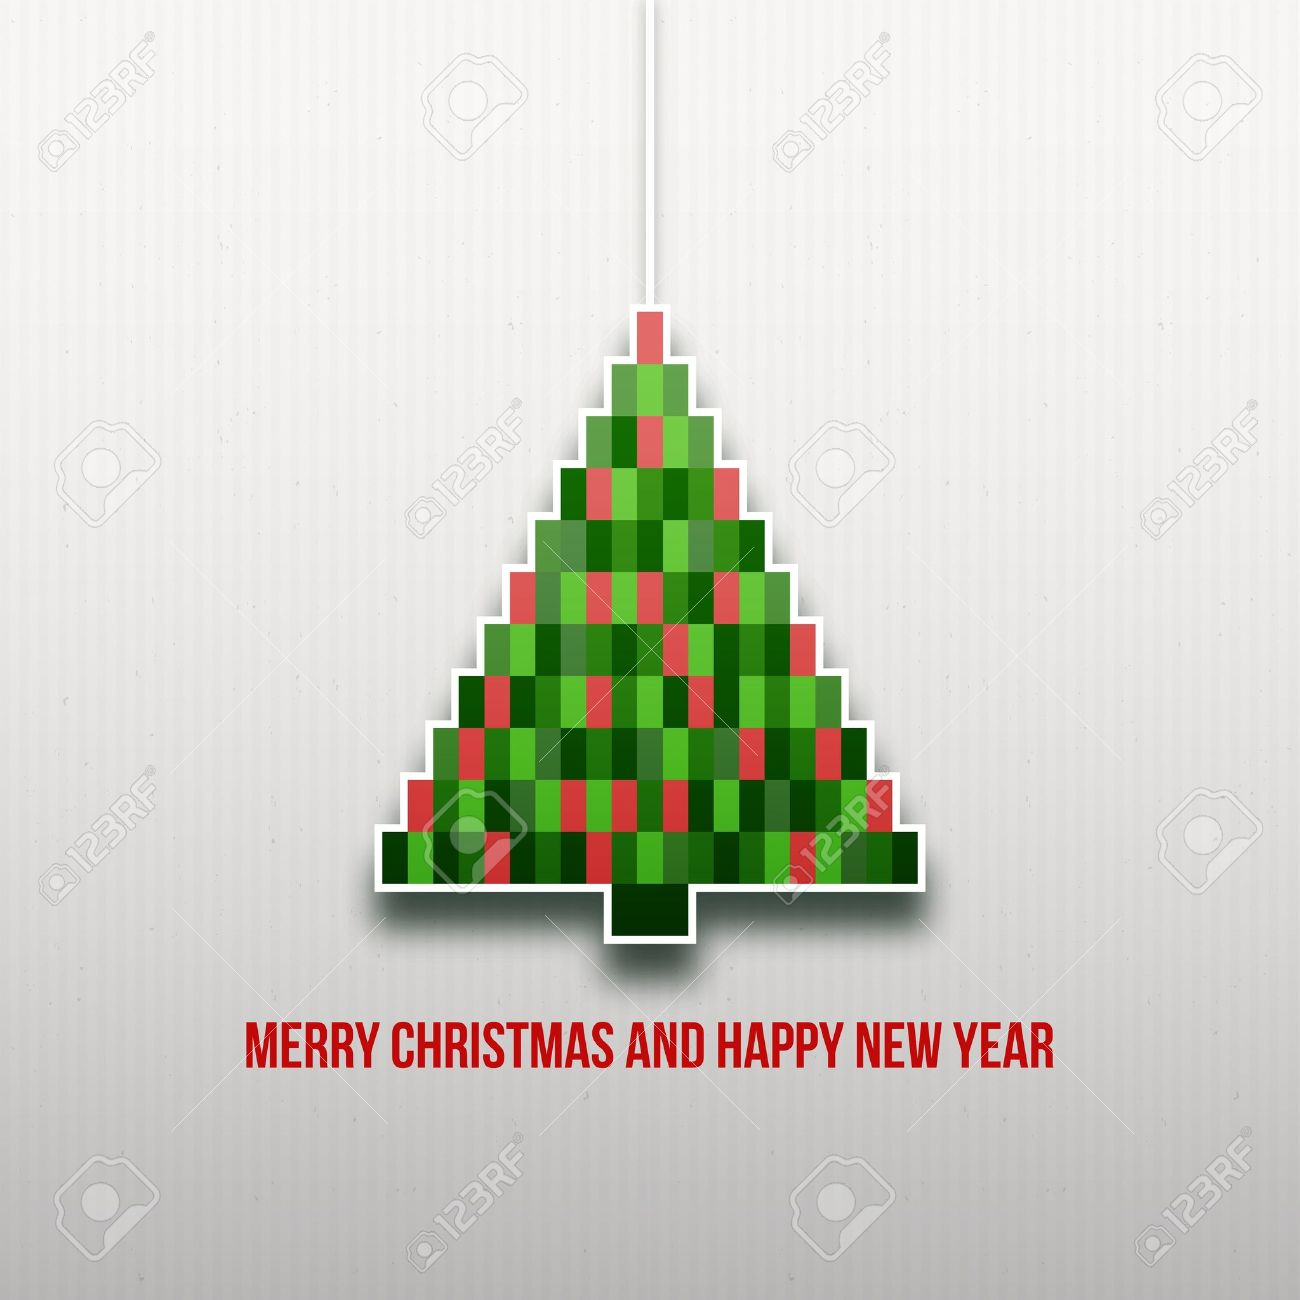 Paper Christmas tree  Christmas background  Christmas card  Happy New Year  Paper texture  Christmas origami  Christmas postcard Stock Vector - 16331719